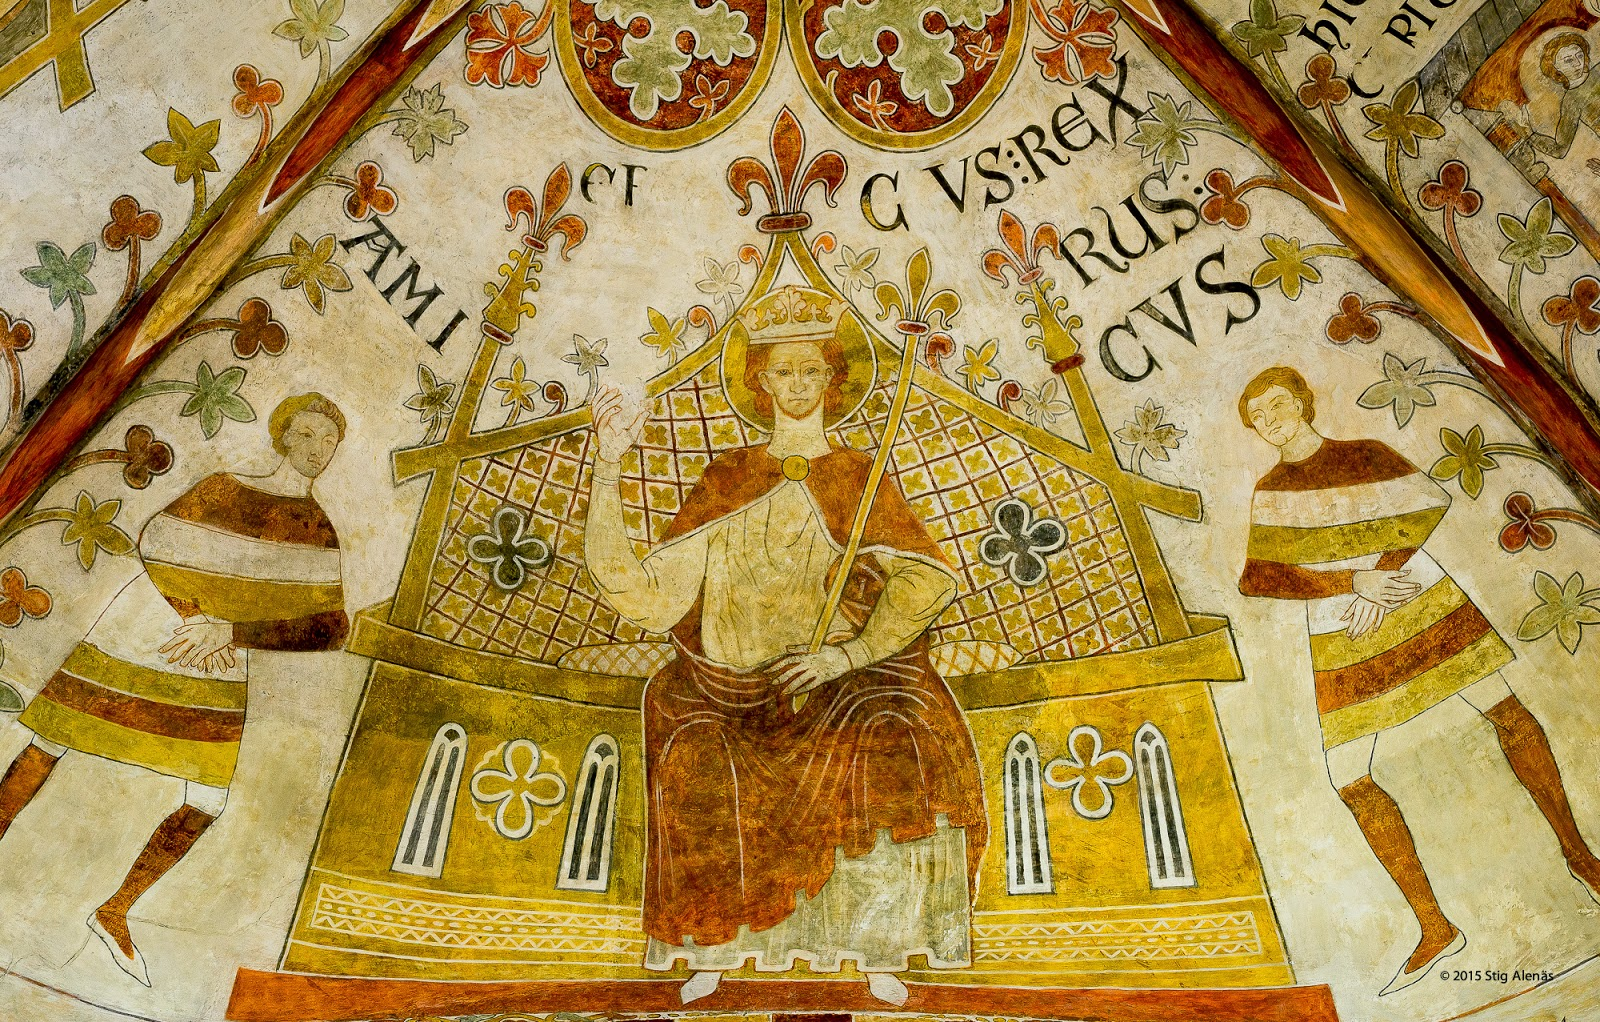 medieval, mural, throne, editorial, fresco, denmark, backgammon, romanesque, st. bendt church, canute lavard, board game, wall-painting, ringsted